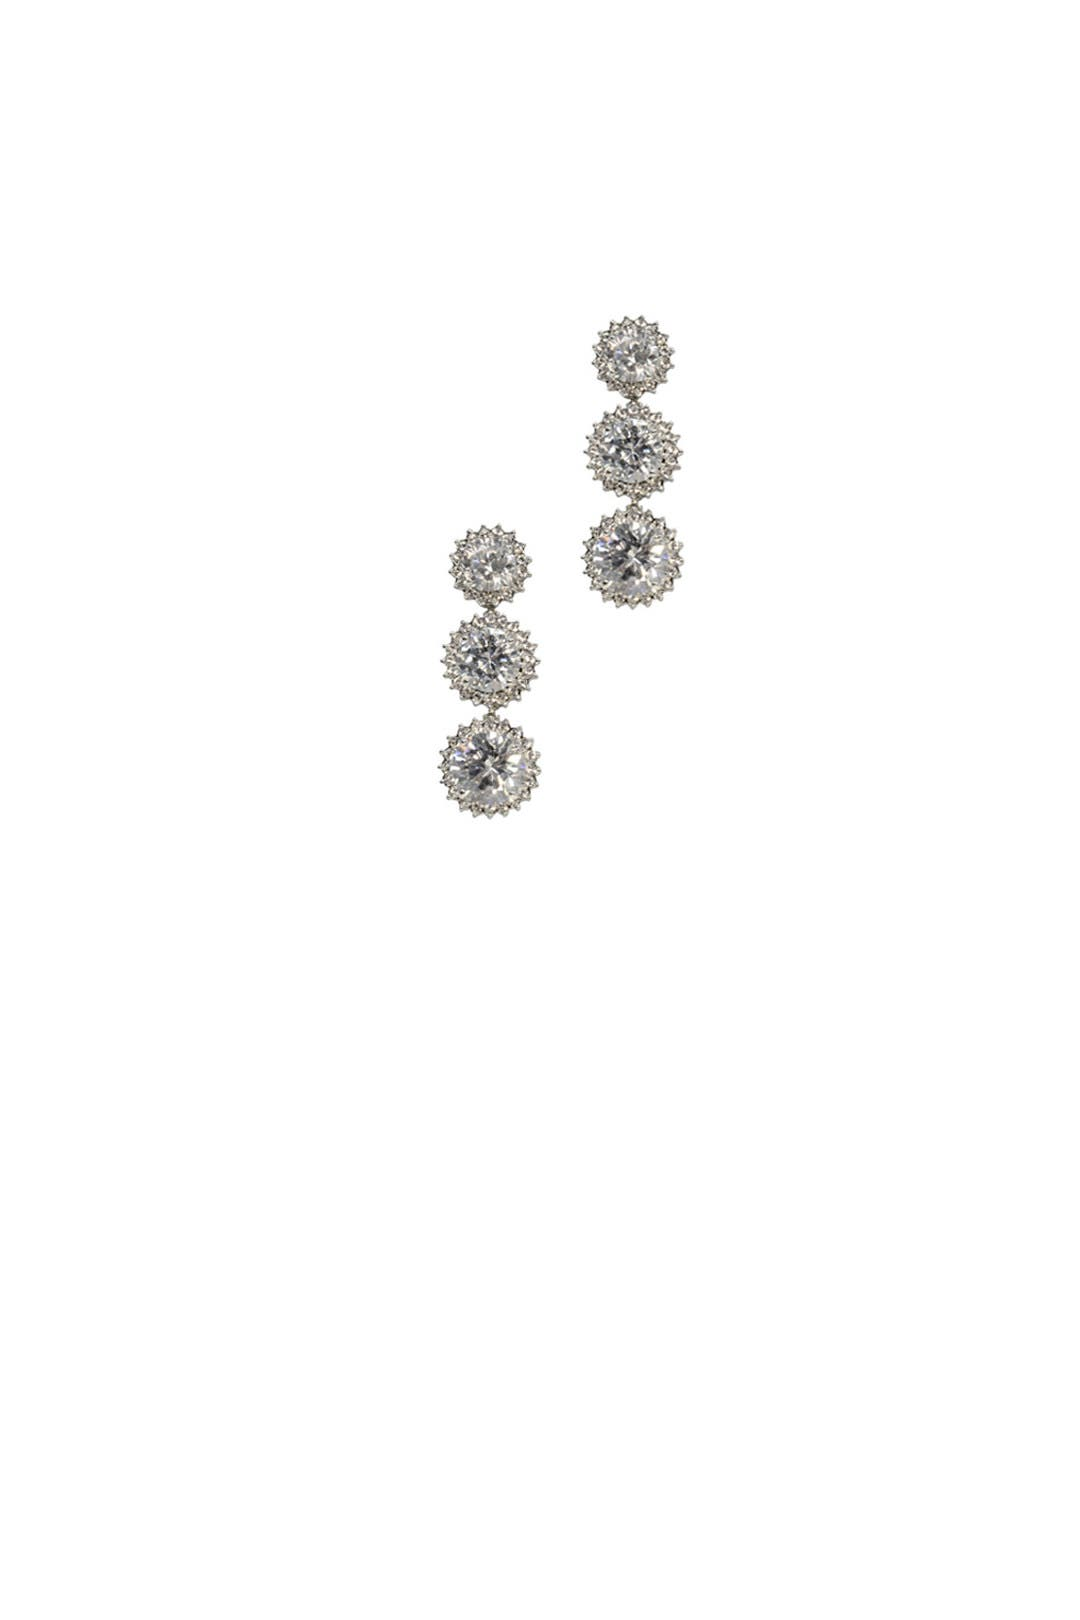 Ocean Moon Earrings by Badgley Mischka Jewelry